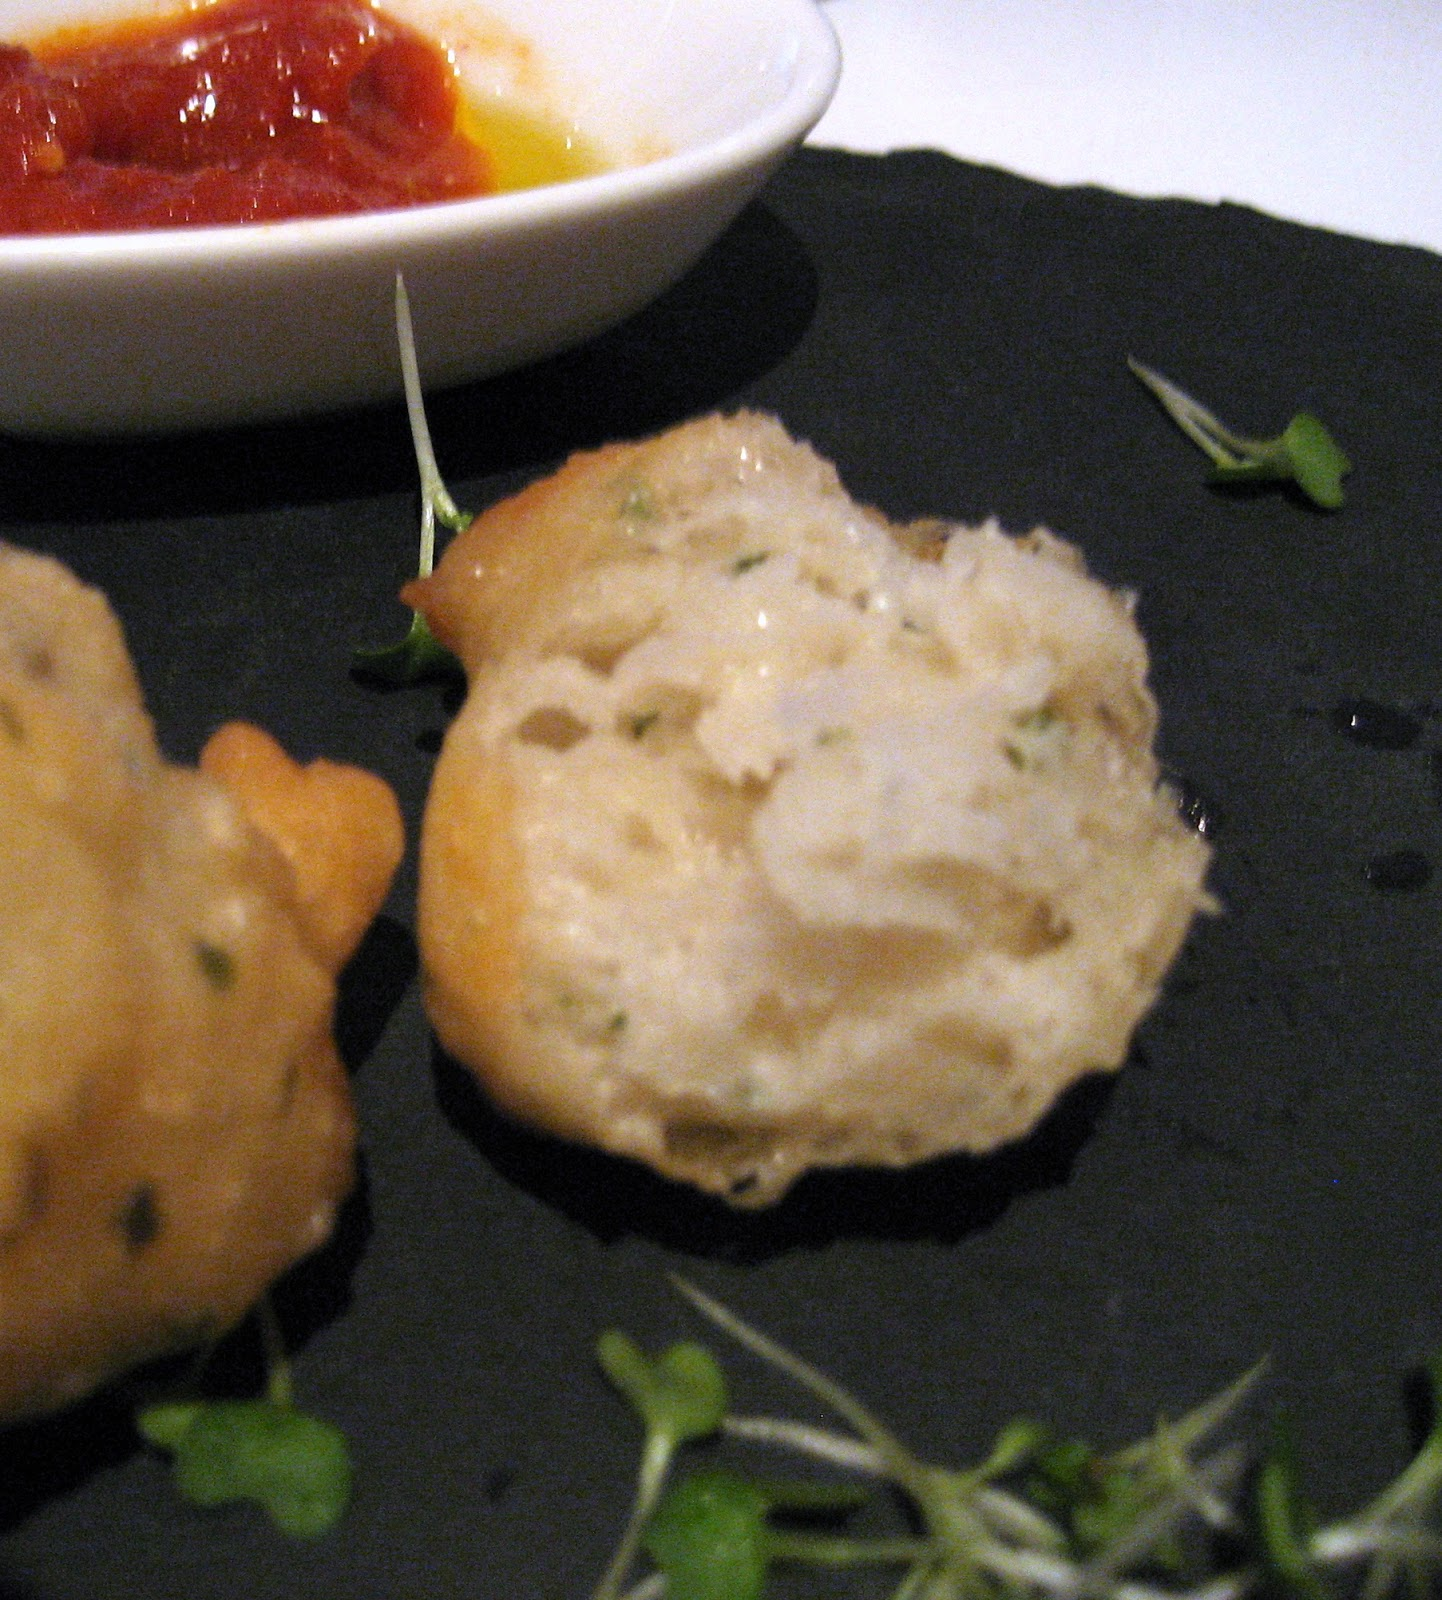 Amuse bouche: Fried pizza dough balls, Osteria Dell'Angolo